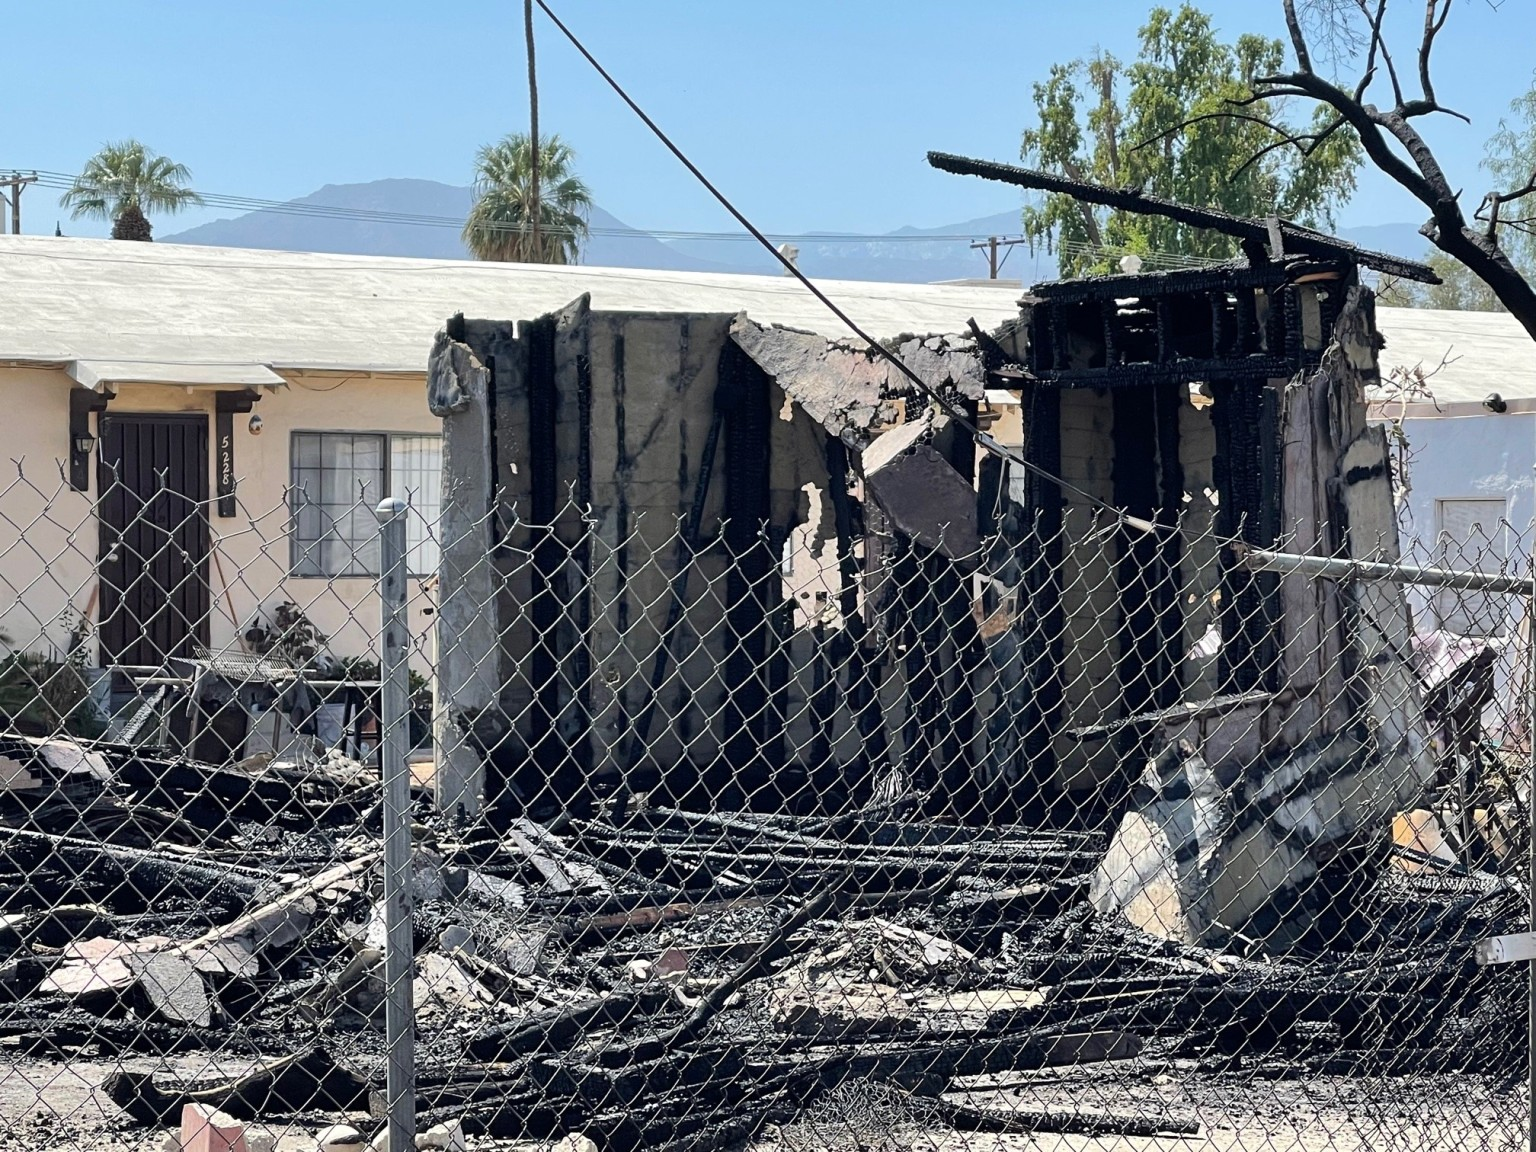 Flames Erupt in Residential Structure In Indio; No Injuries Reported